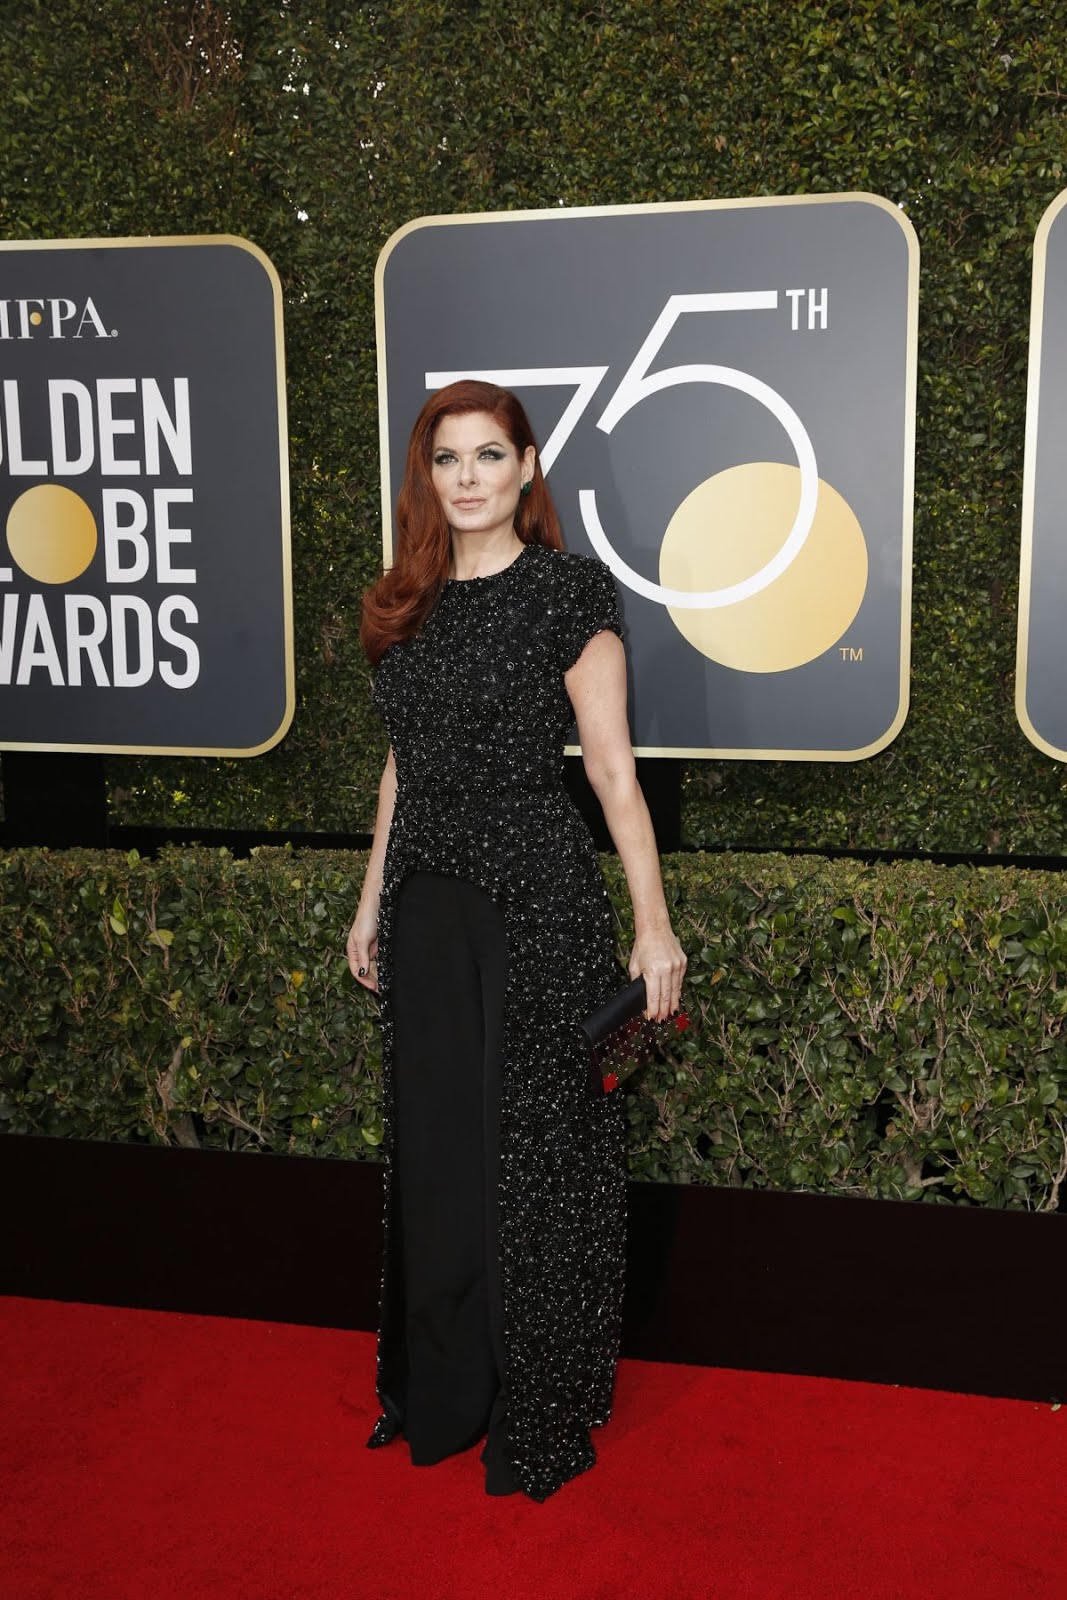 HD Photos of Debra Messing At 75Th Annual Golden Globe Awards In Beverly Hills